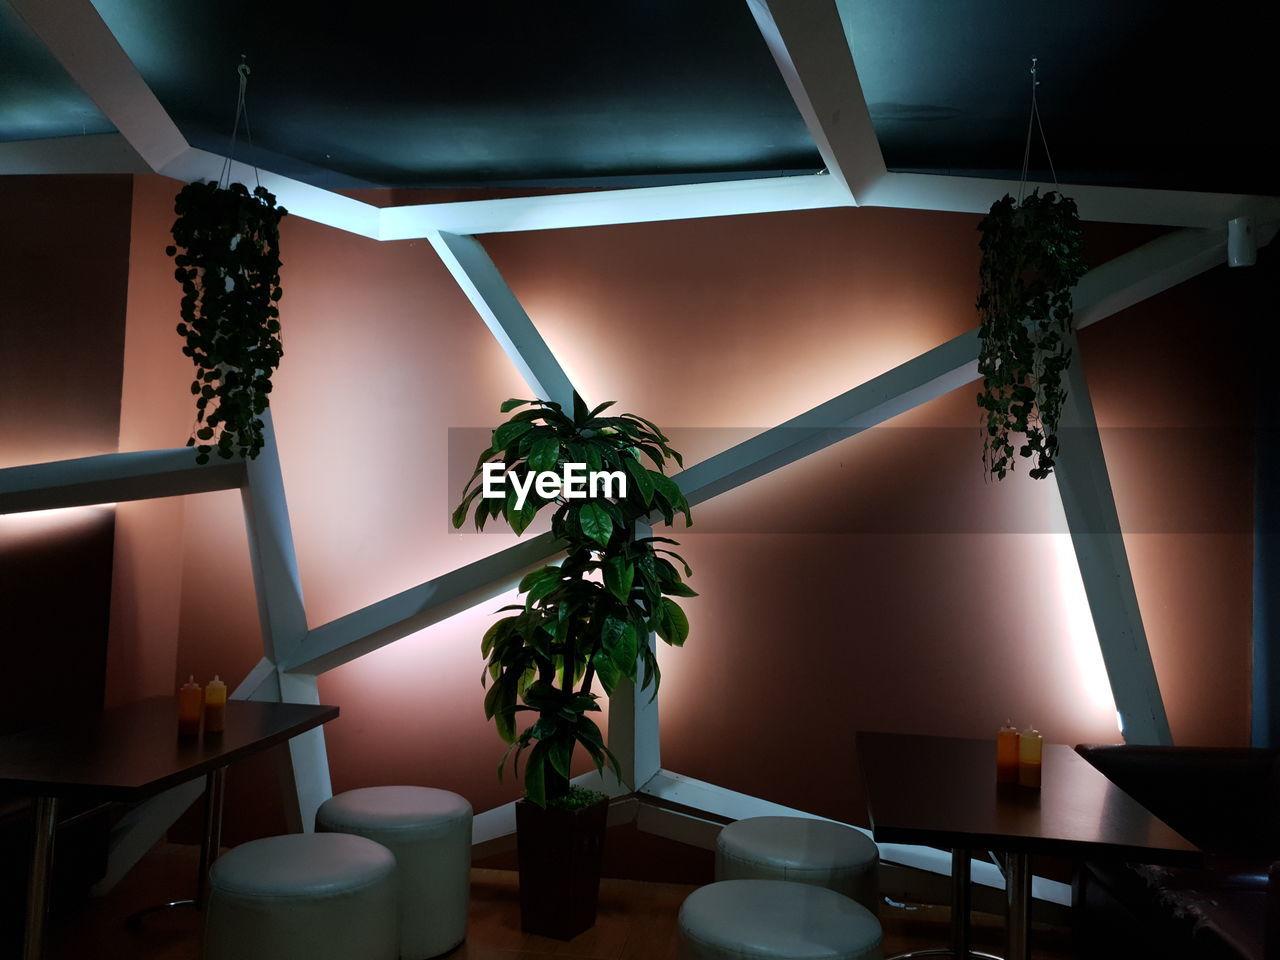 indoors, plant, no people, potted plant, home interior, nature, vase, growth, illuminated, architecture, seat, table, decoration, absence, domestic room, chair, houseplant, plant part, window, ceiling, electric lamp